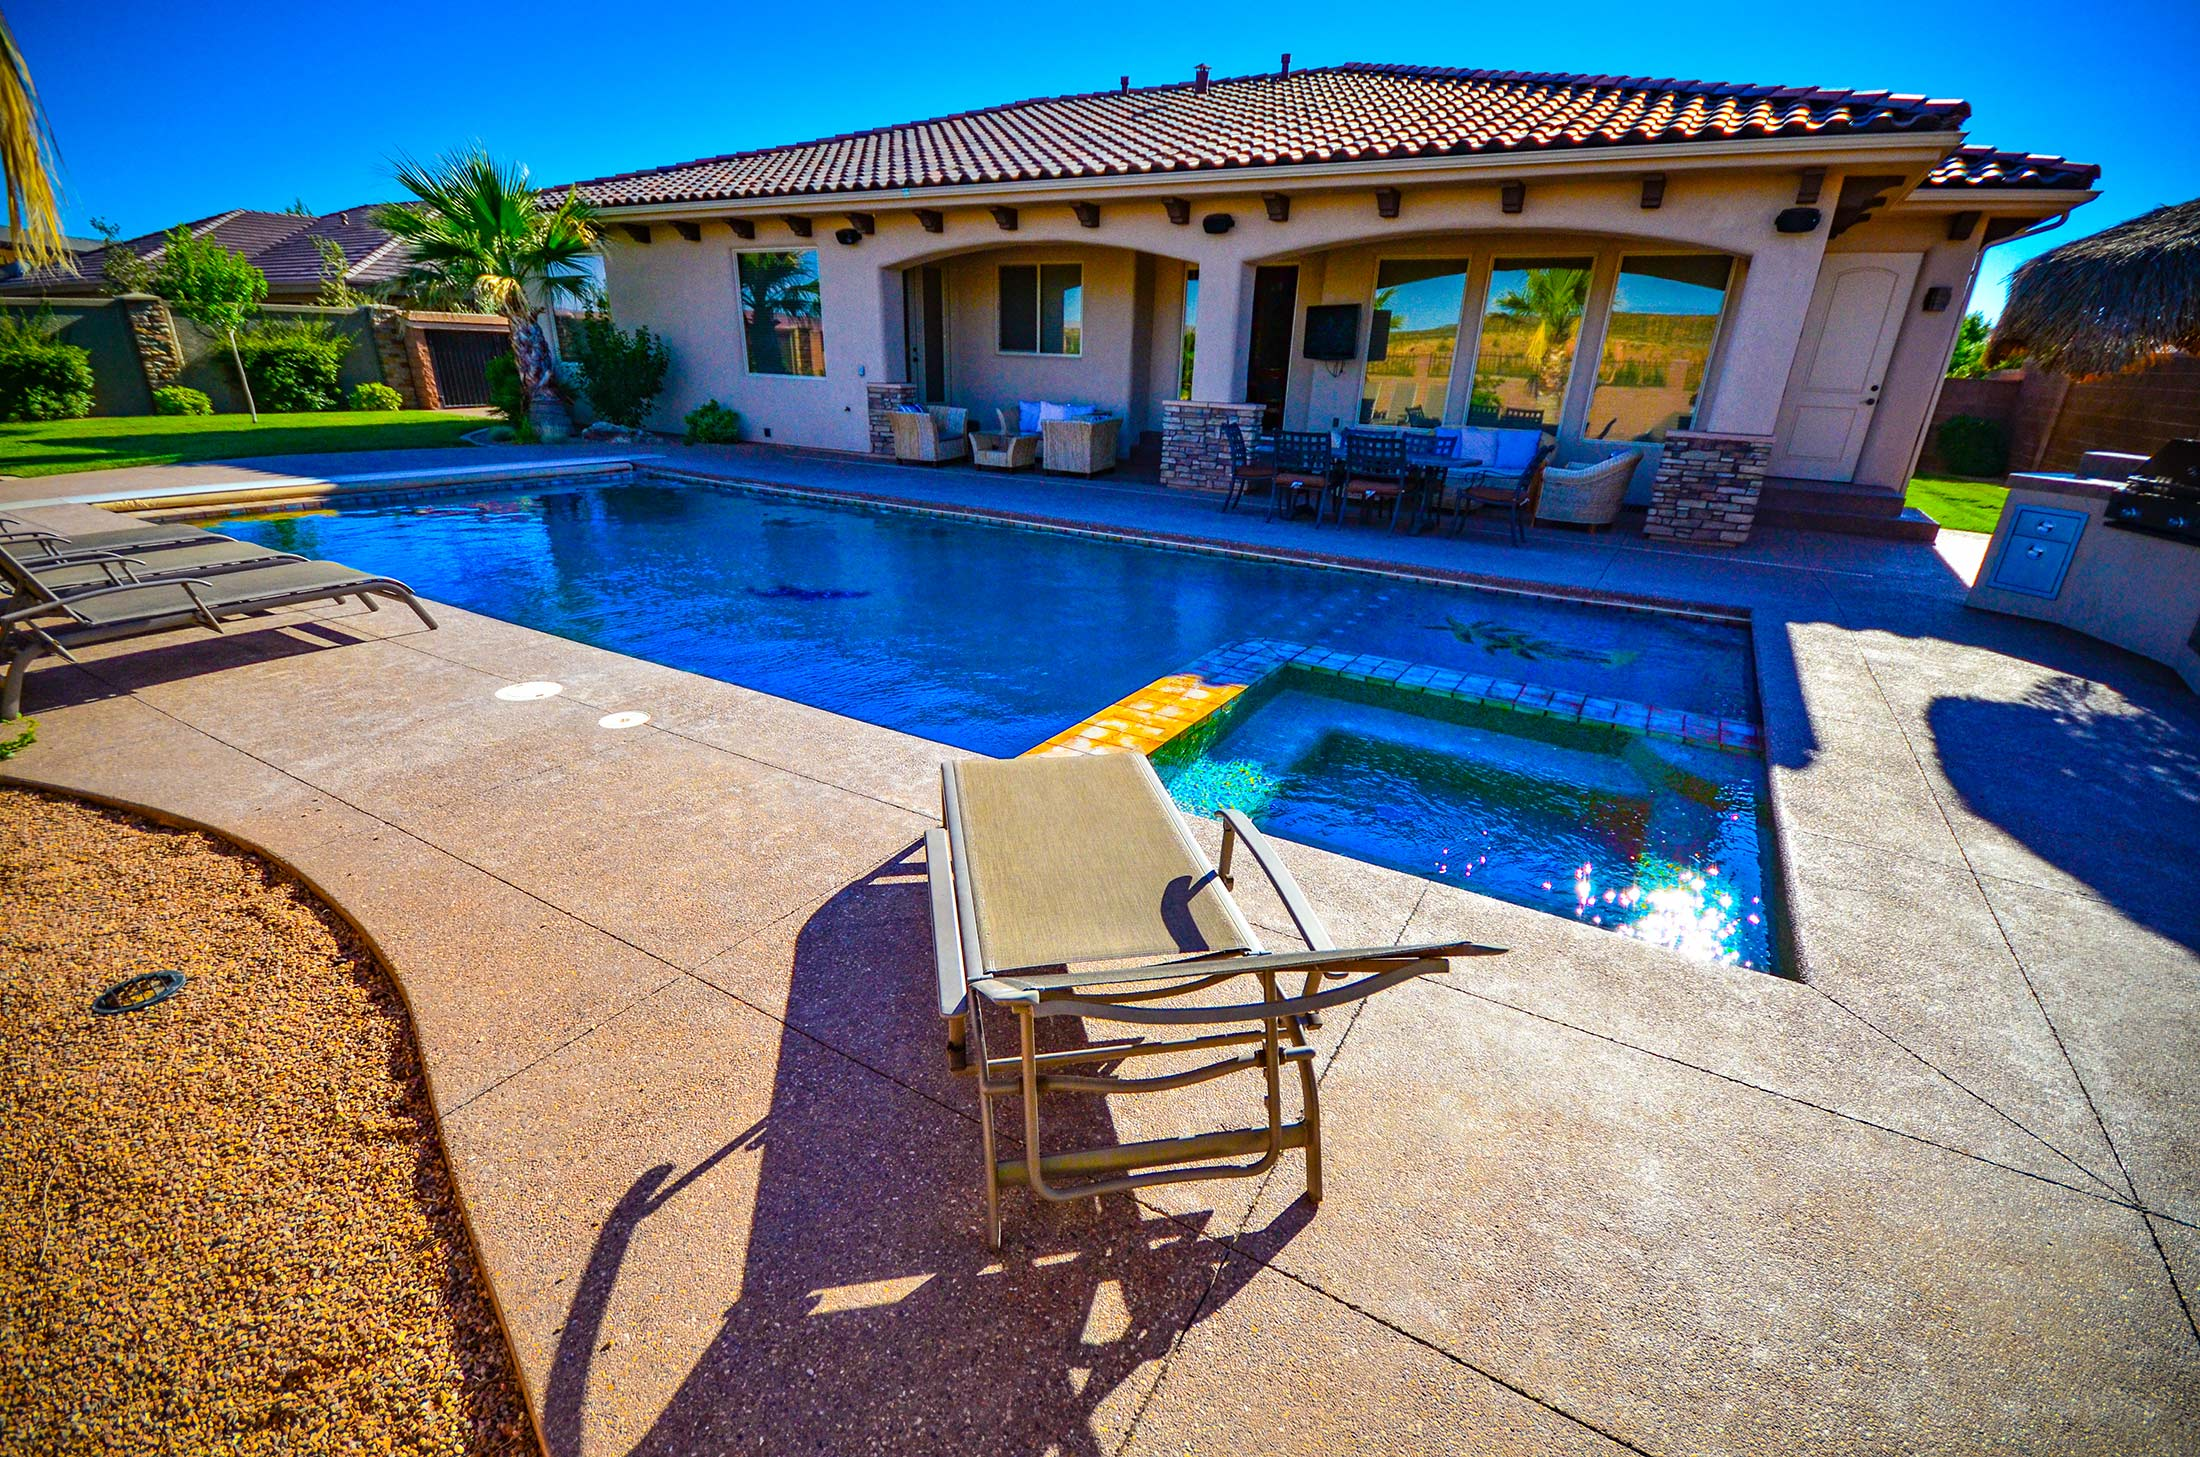 12 Magic ways to get your Homes for Rent in St. George!